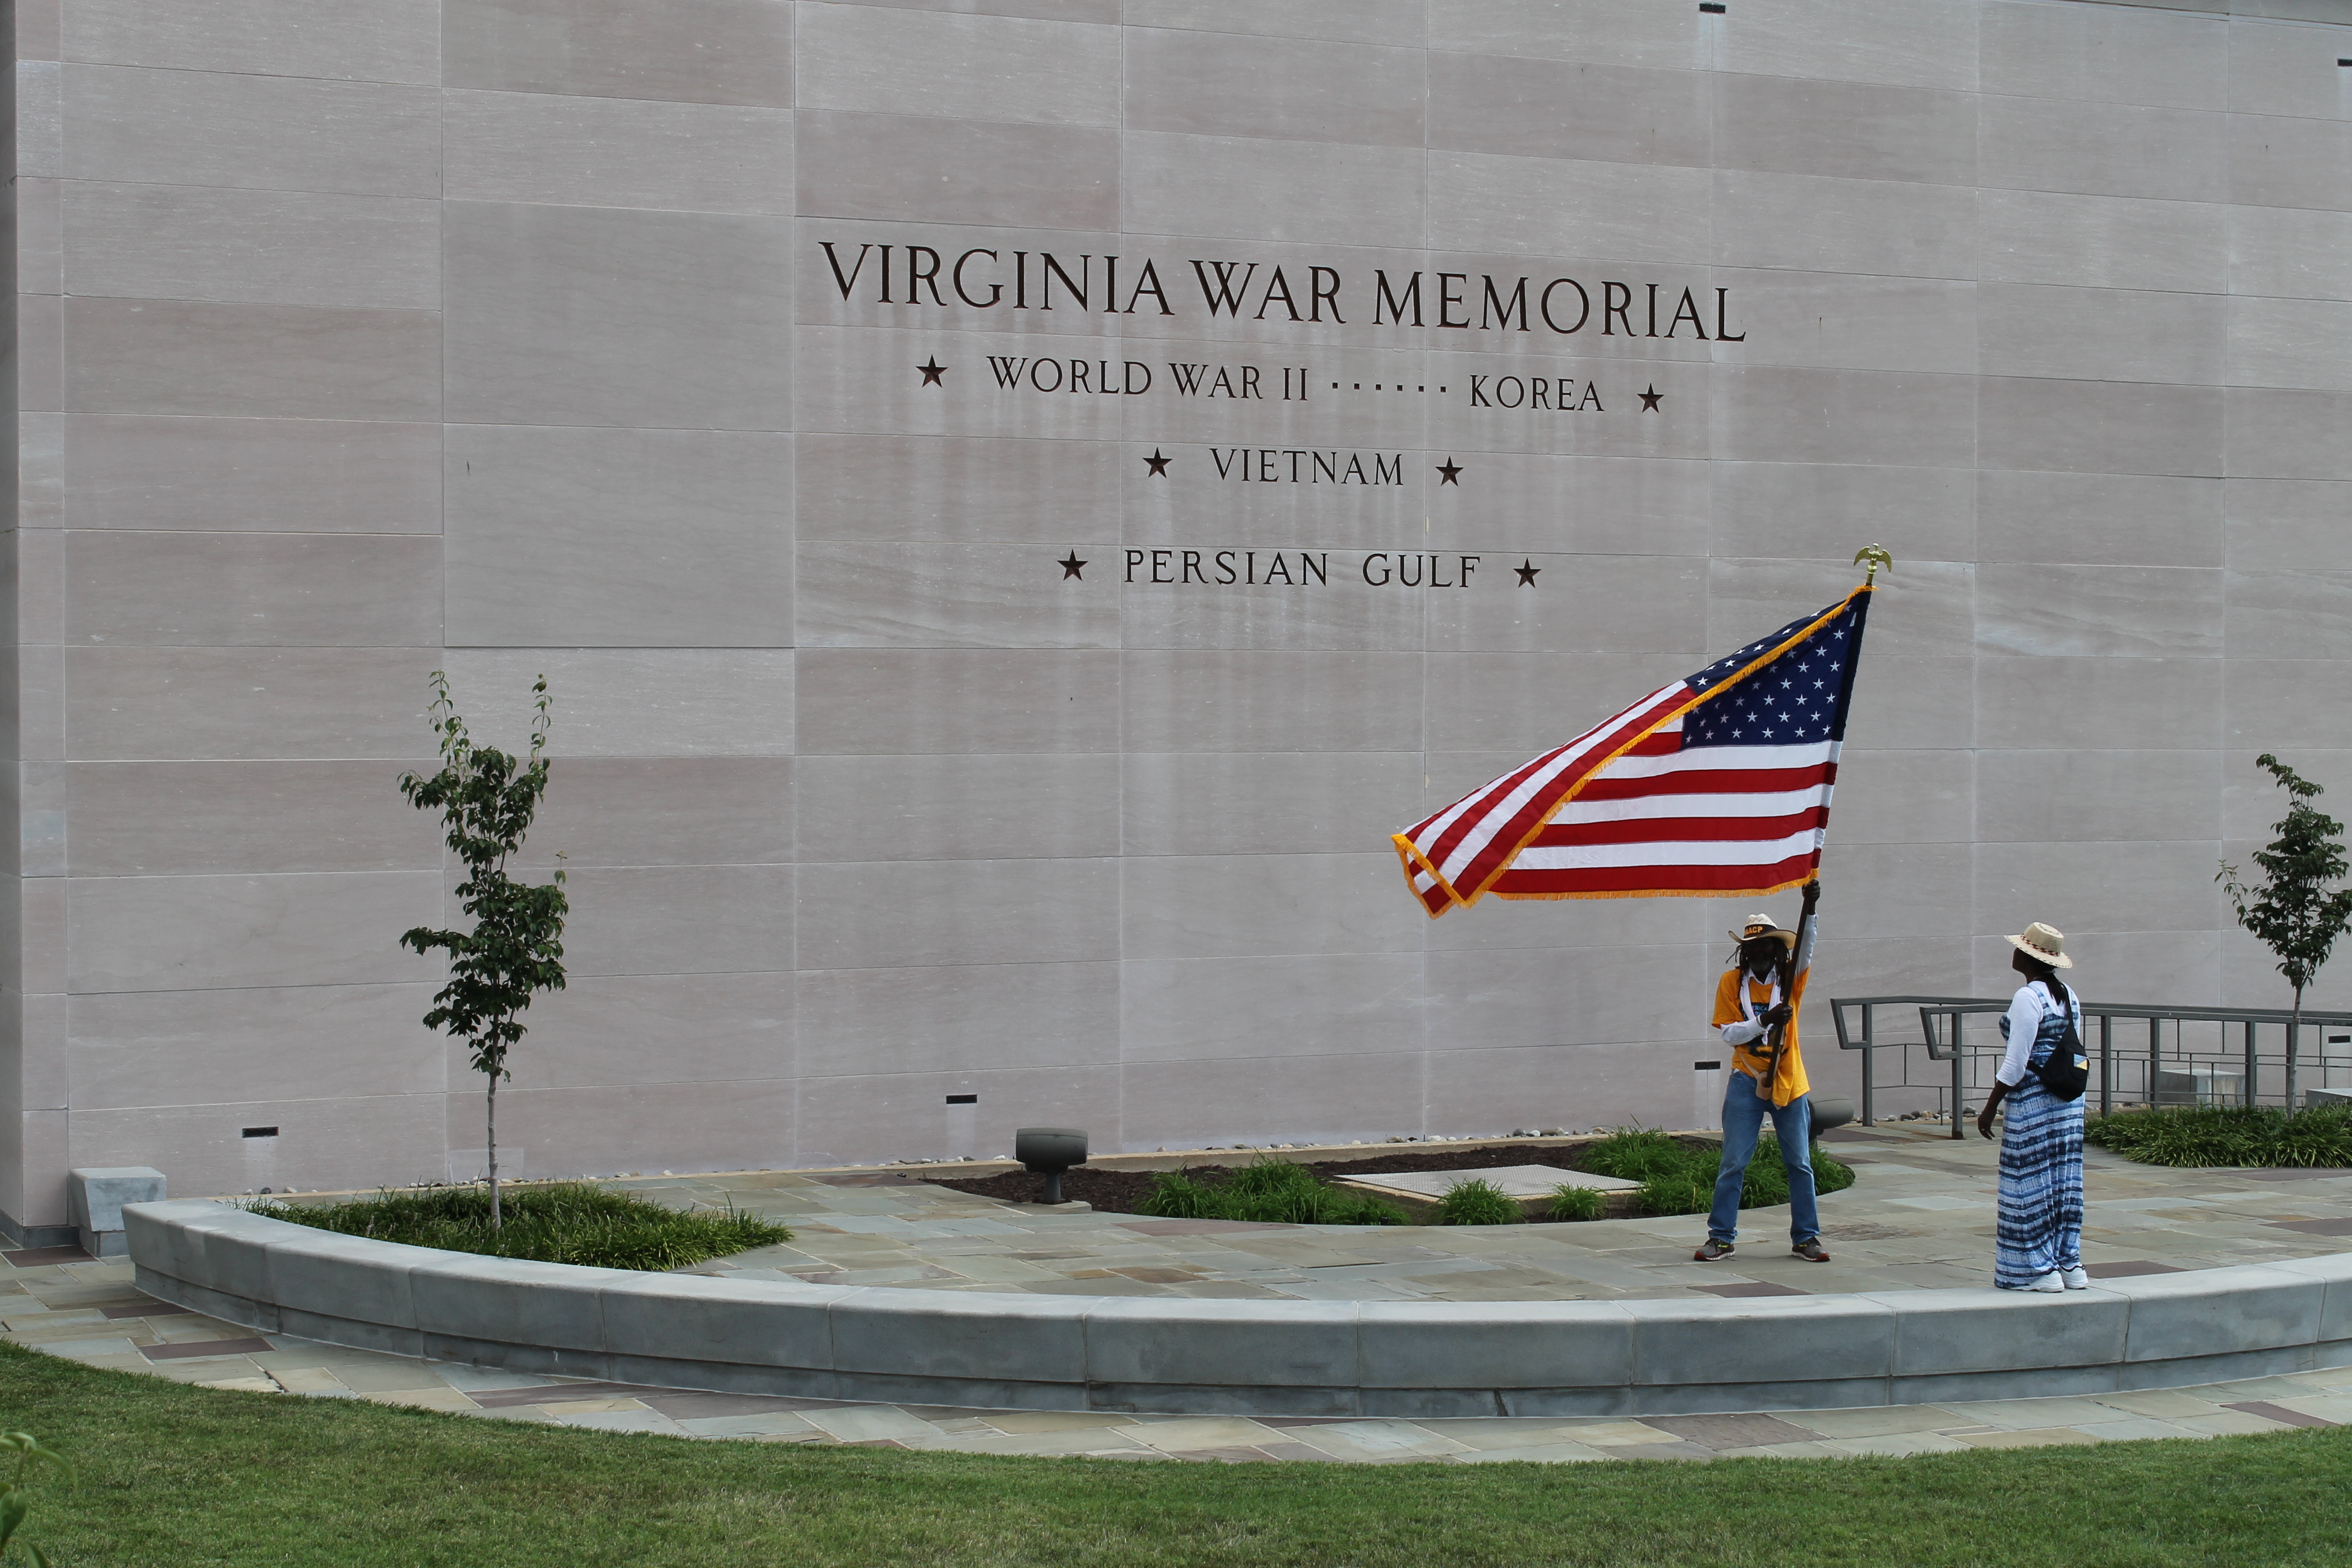 Middle Passage waving American flag in front of the Virginia war memorial